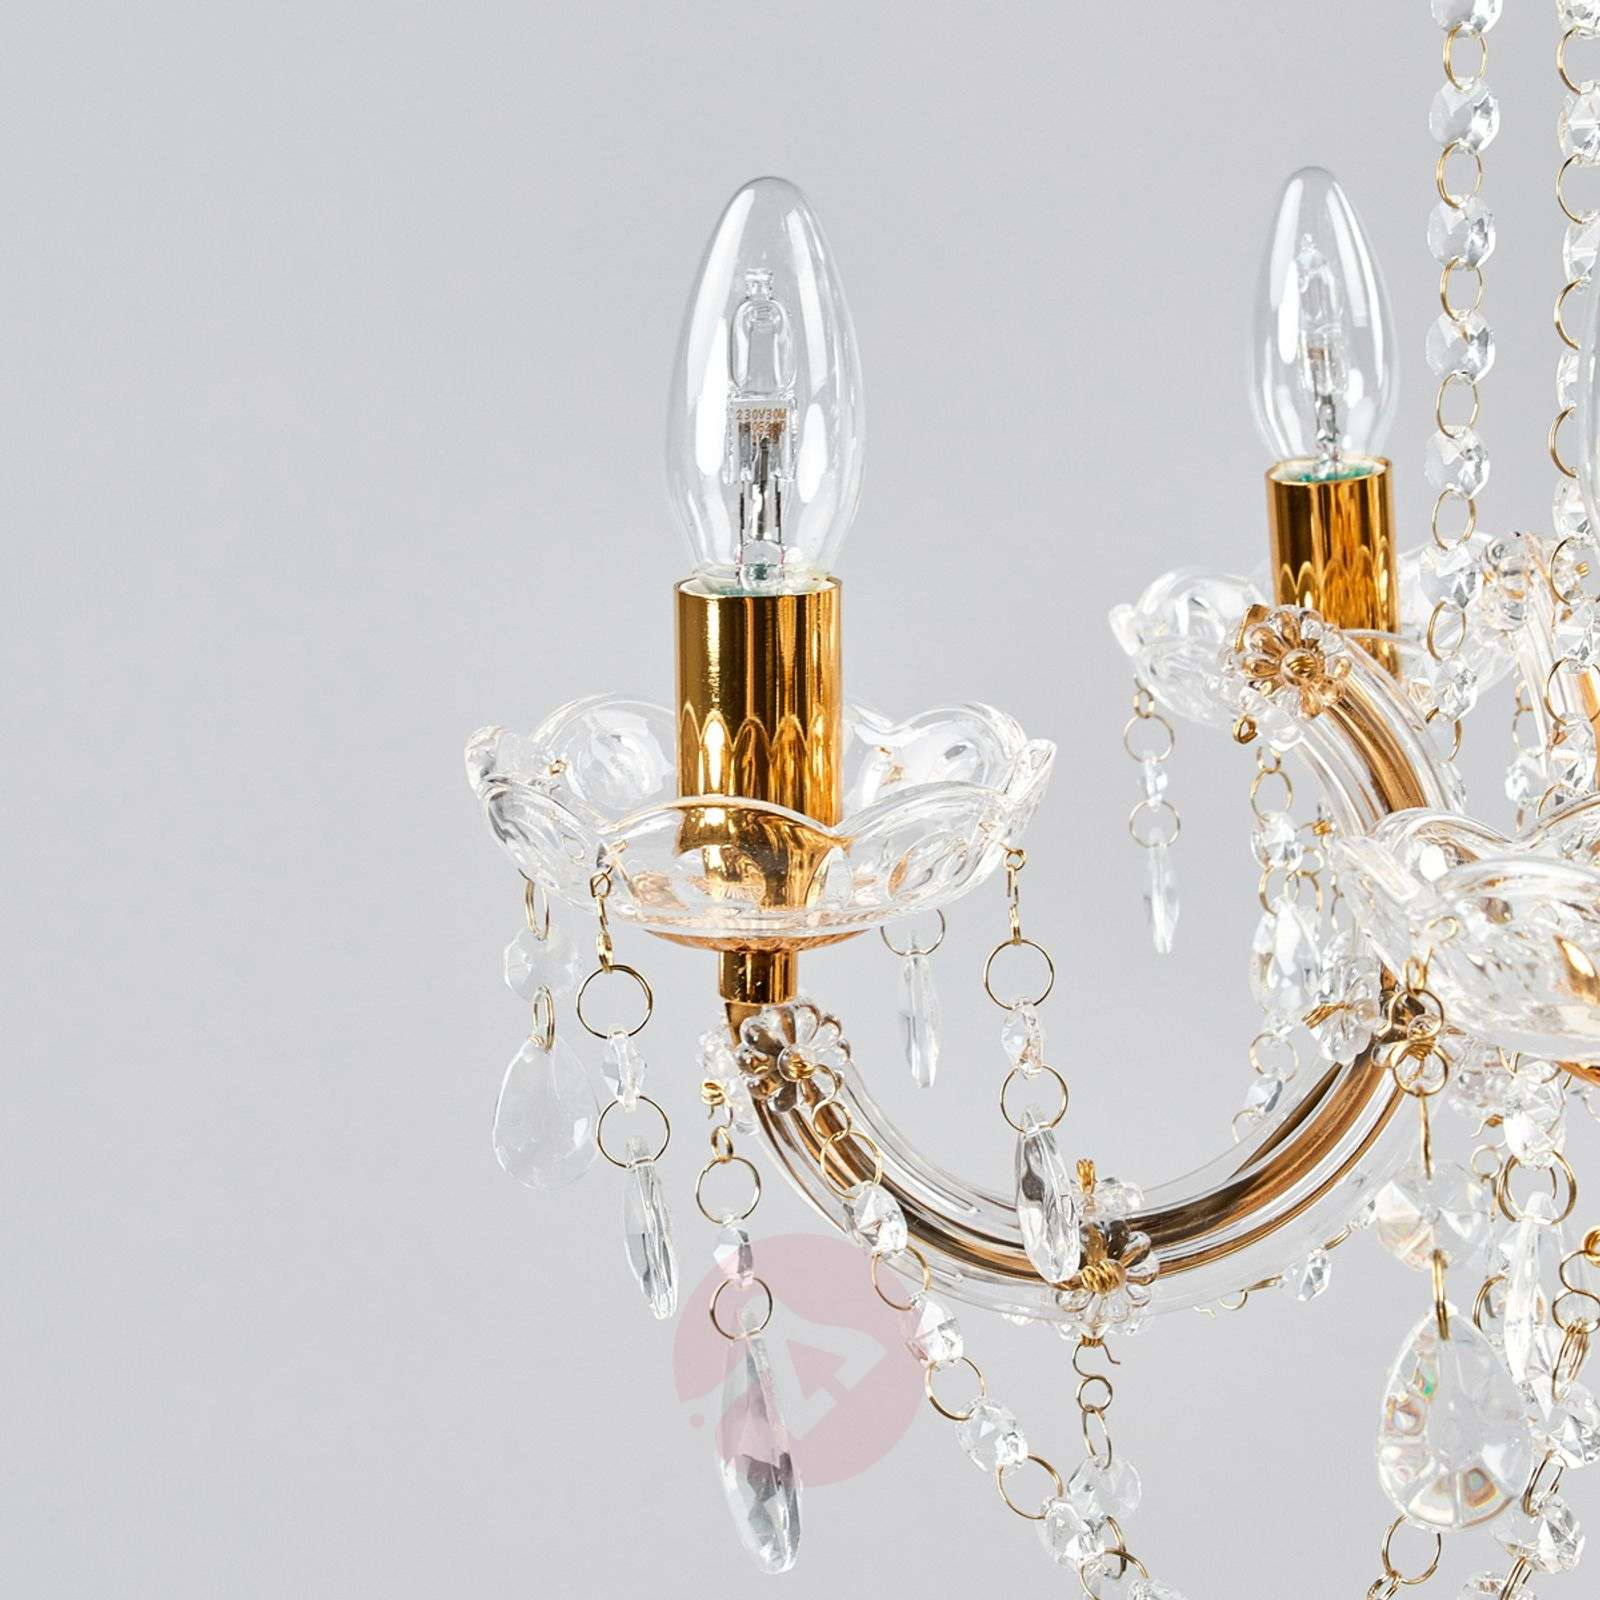 Beau lustre MARIE THERESE à 5 lampes-8570160-04